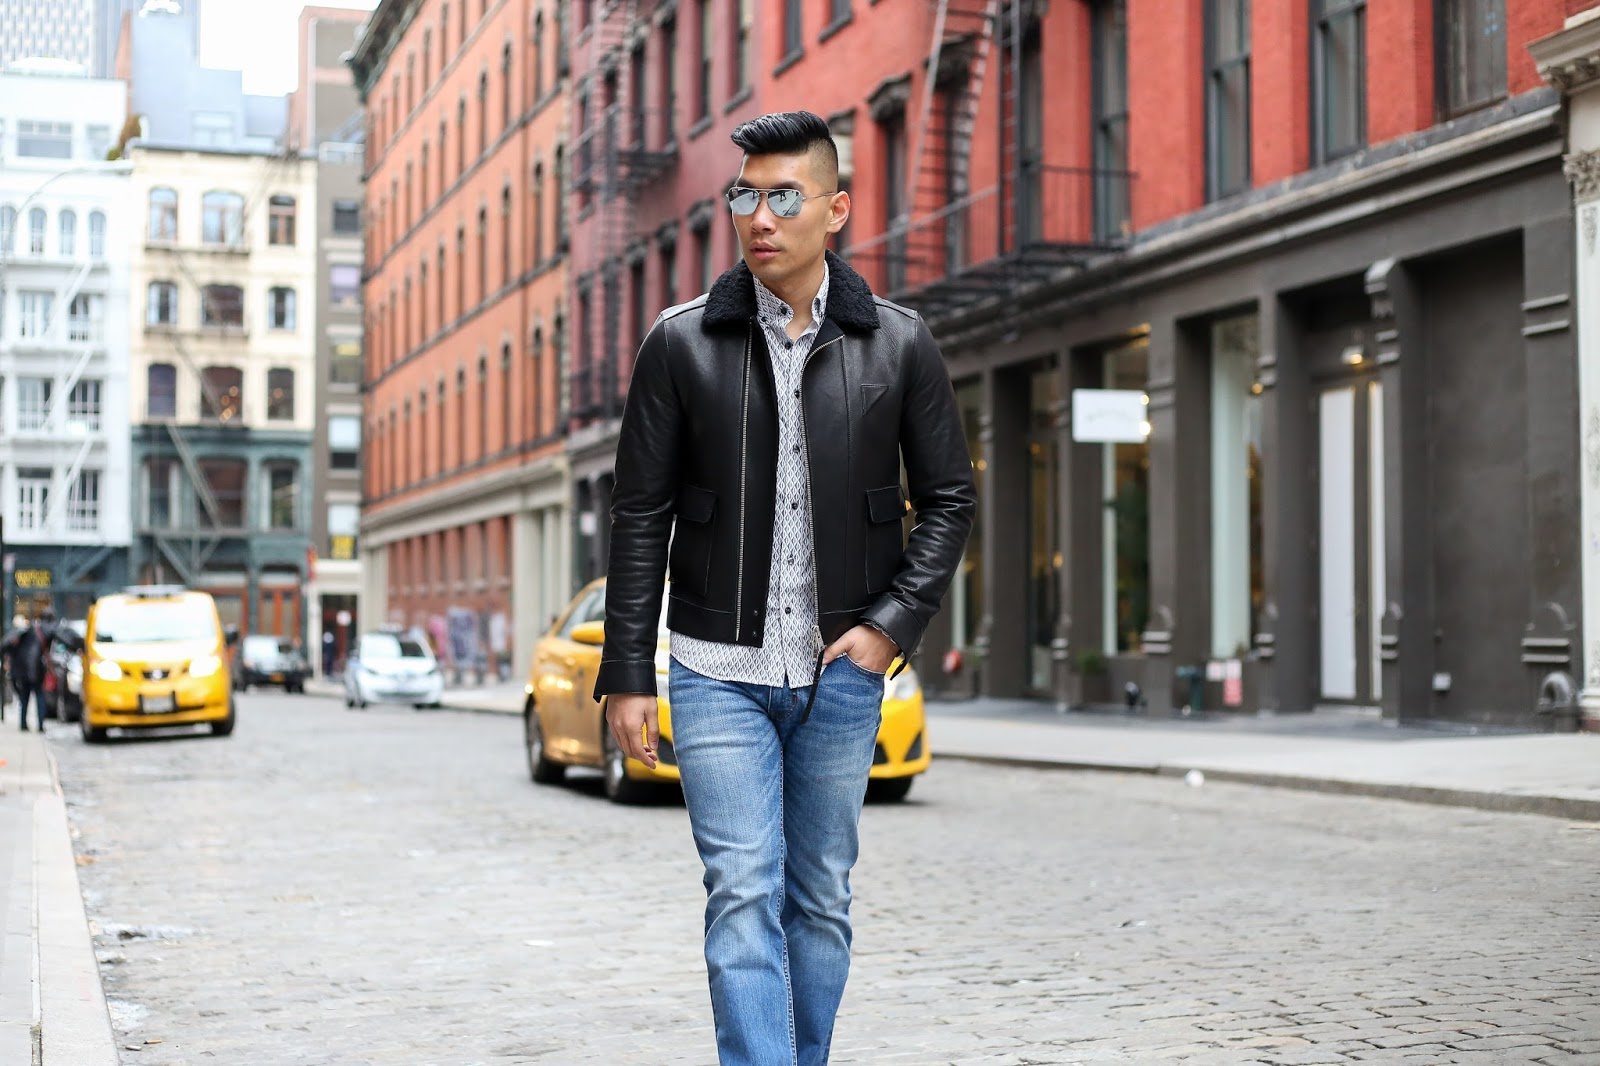 Slate Denim with All Saints Jacket, Menswear Outfit